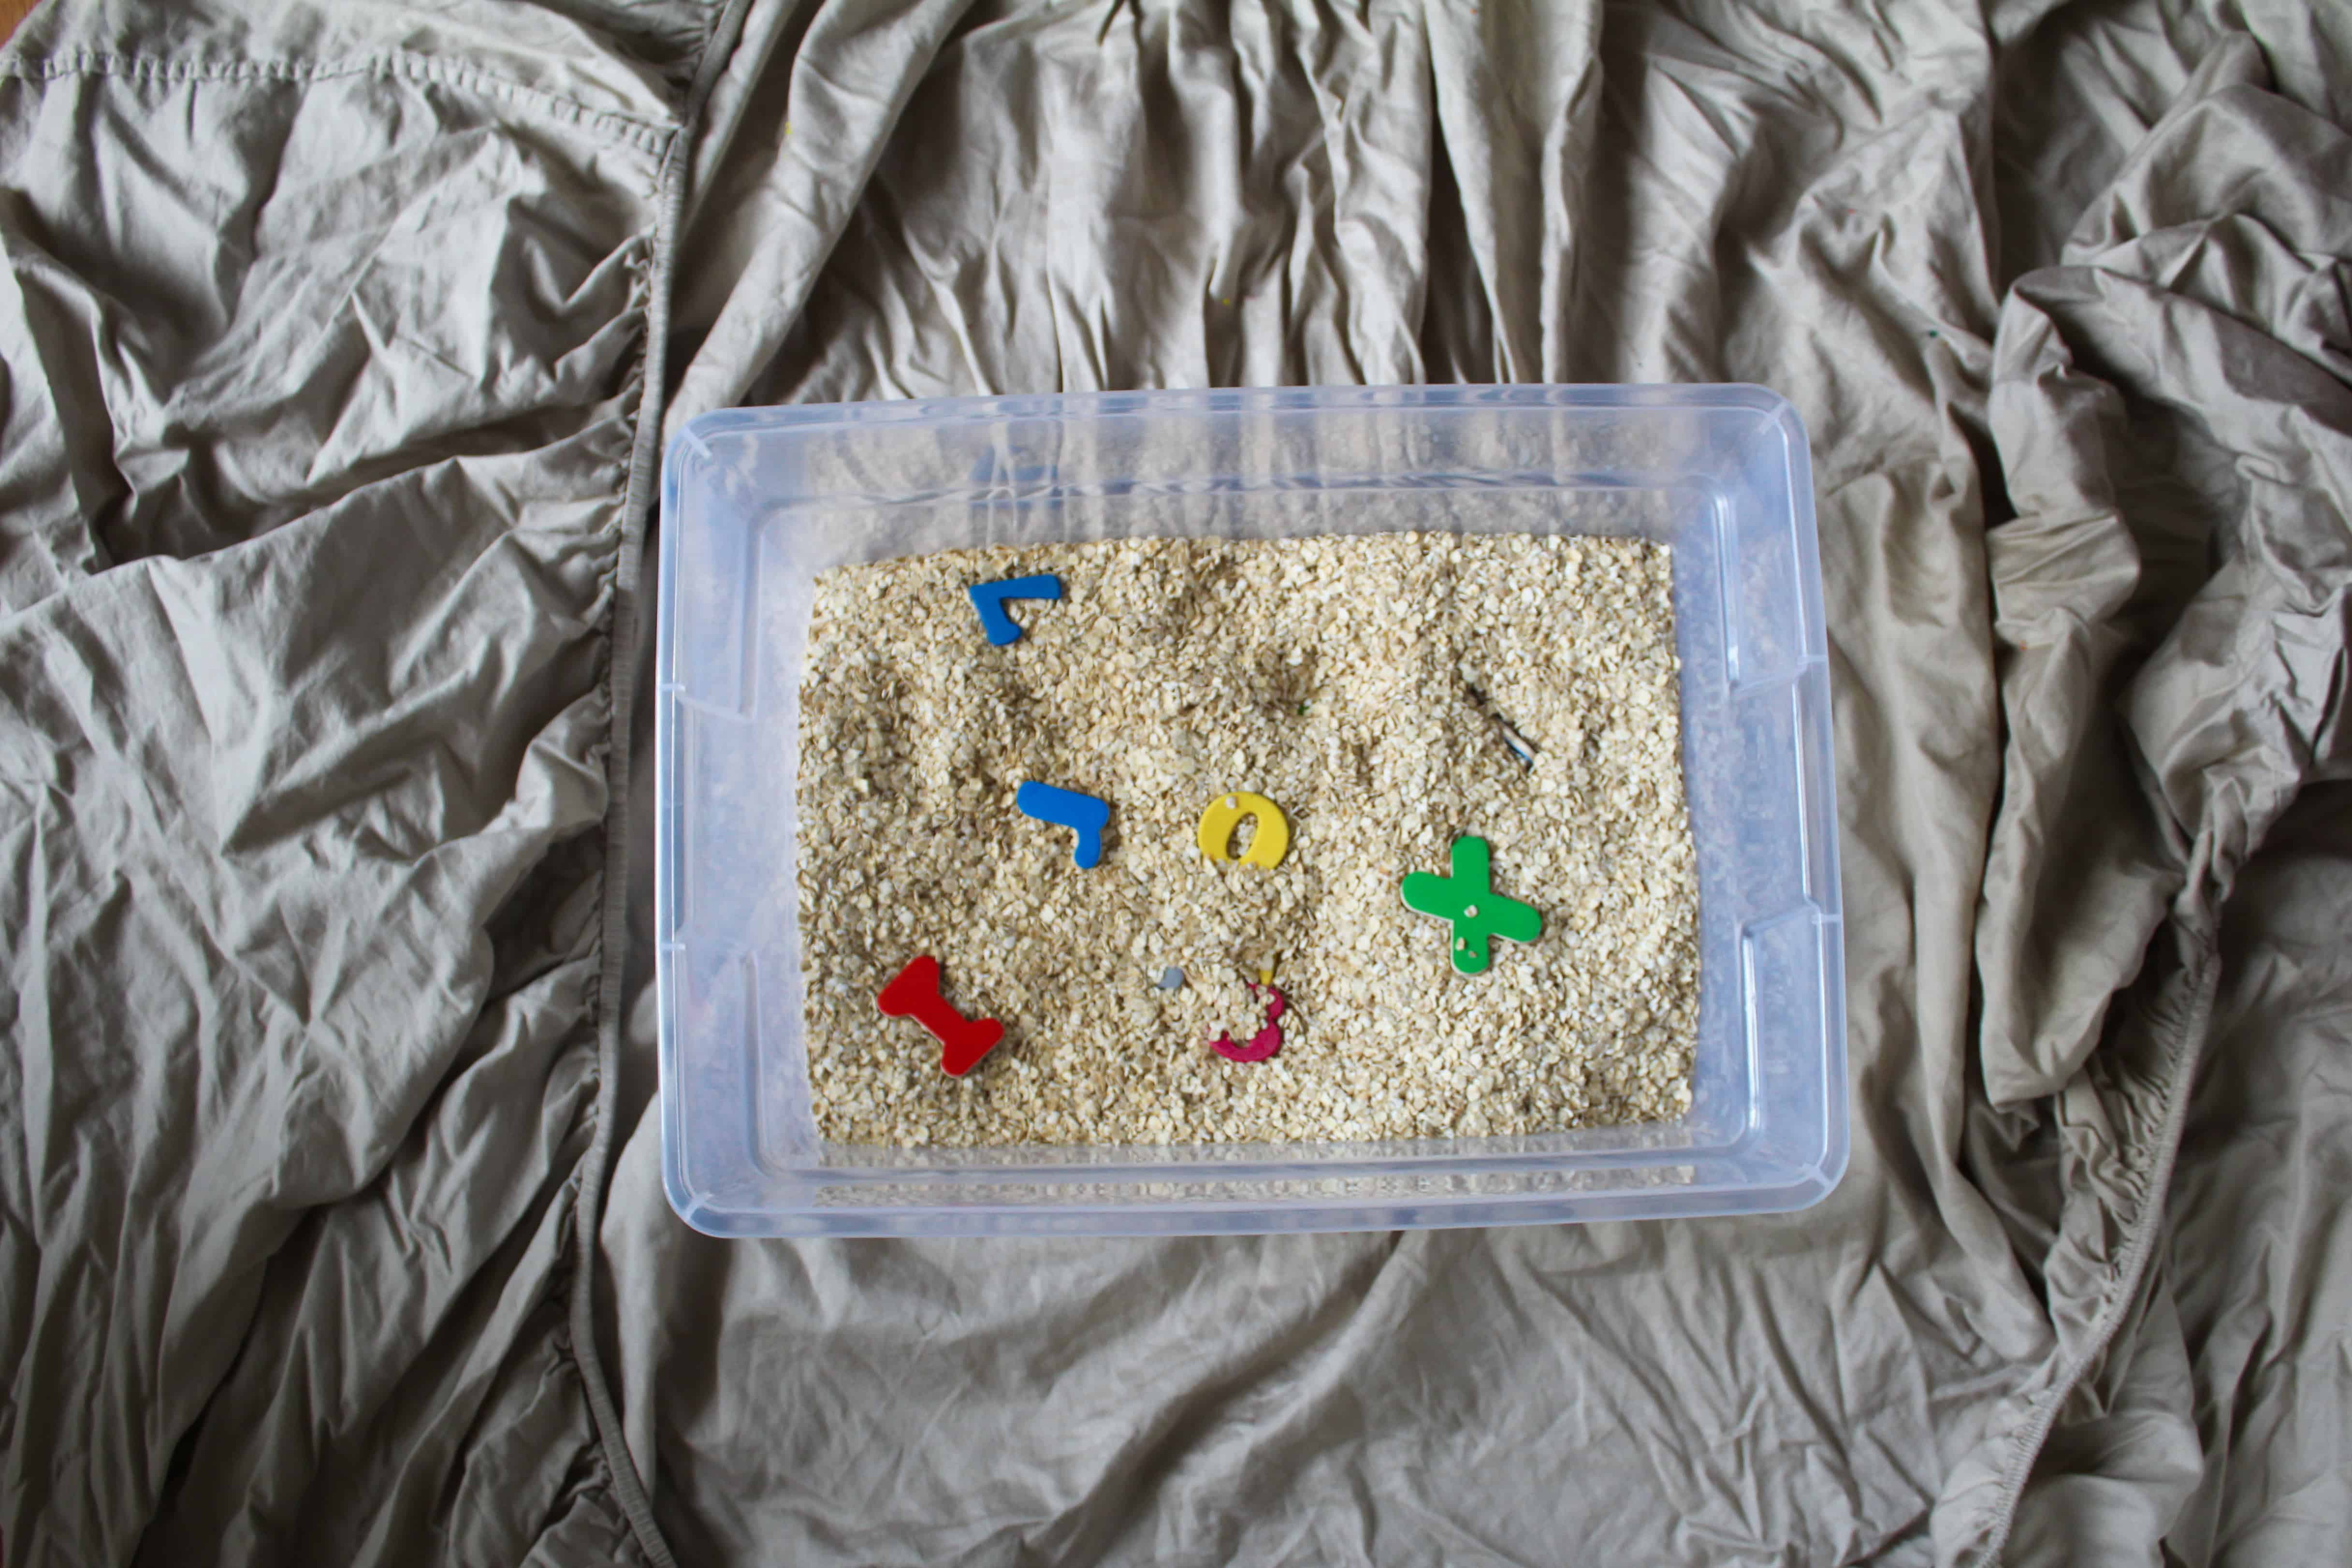 Fun toddler friendly sensory activities. This sensory box has oatmeal and incorporated wooden alphabet letters in order to explore early letter recognition.